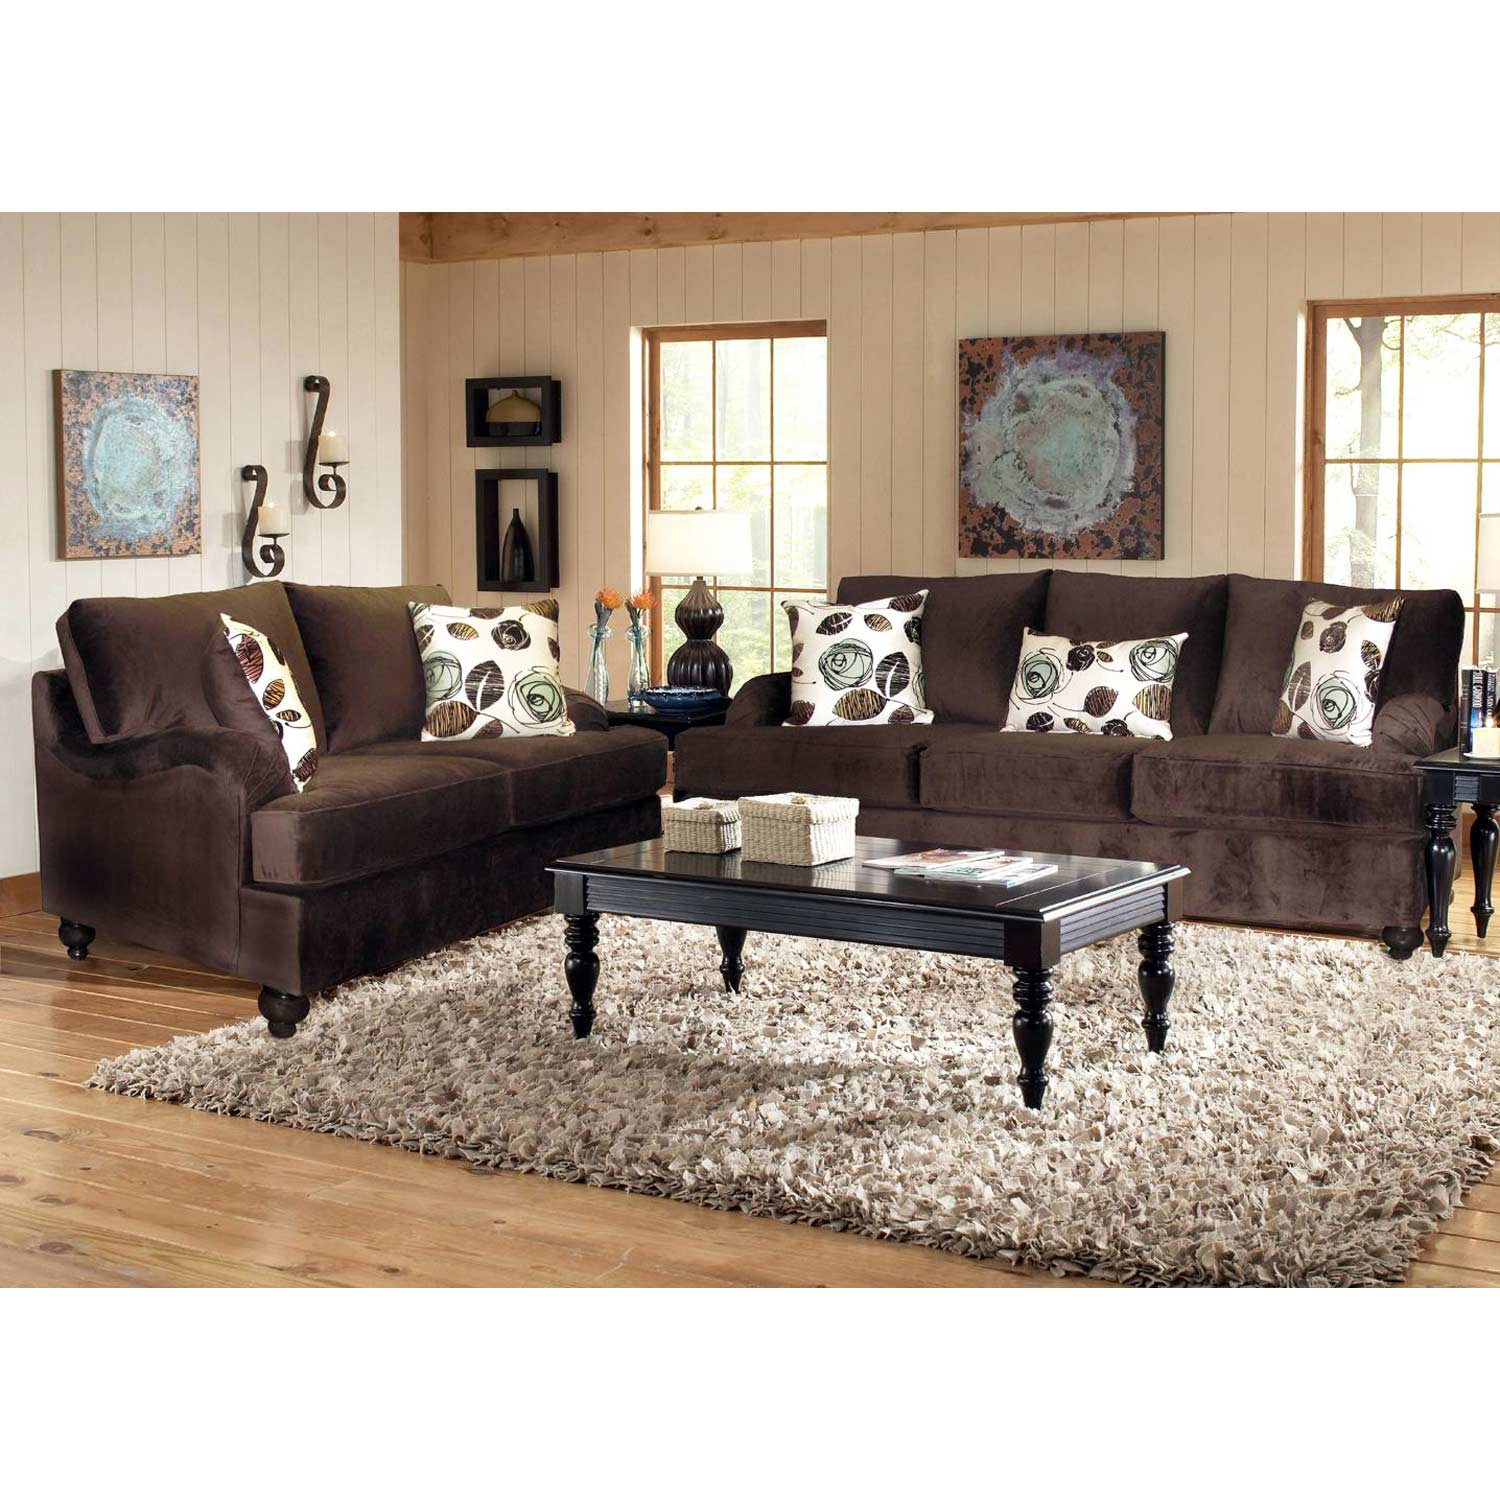 Chloe Transitional Fabric Sofa - Turned Feet, Bella Chocolate - CHF-256700-30